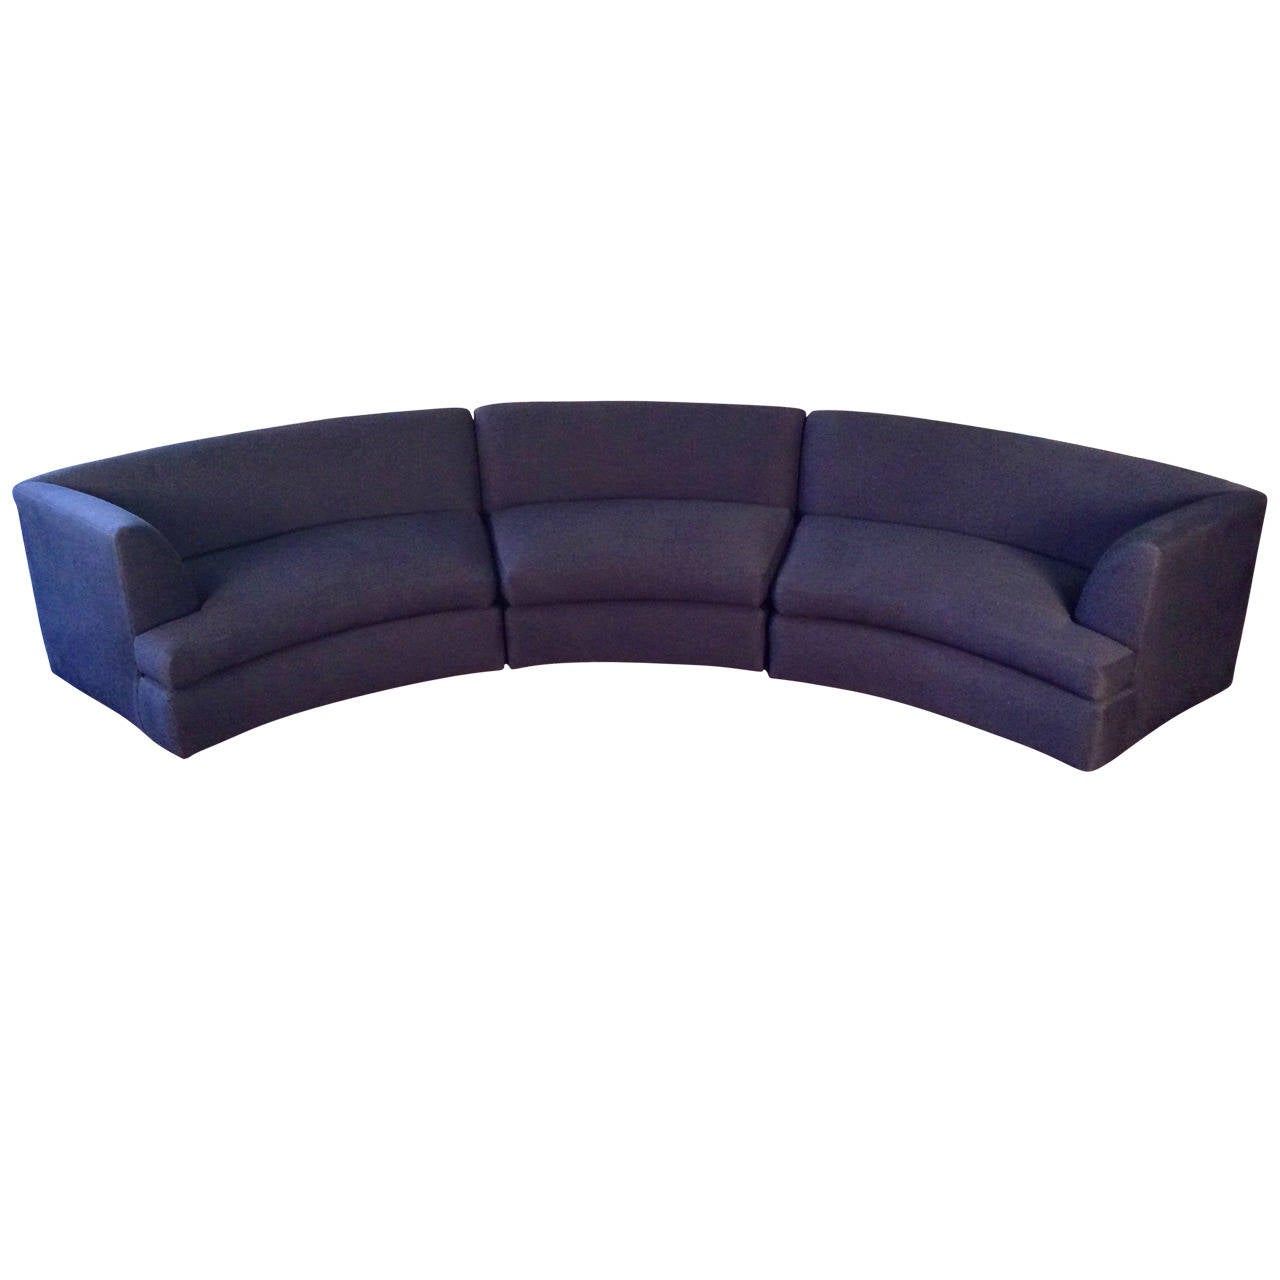 Awesome Curved Sofa By Directional In The Style Of Milo Baughman At 1stdibs